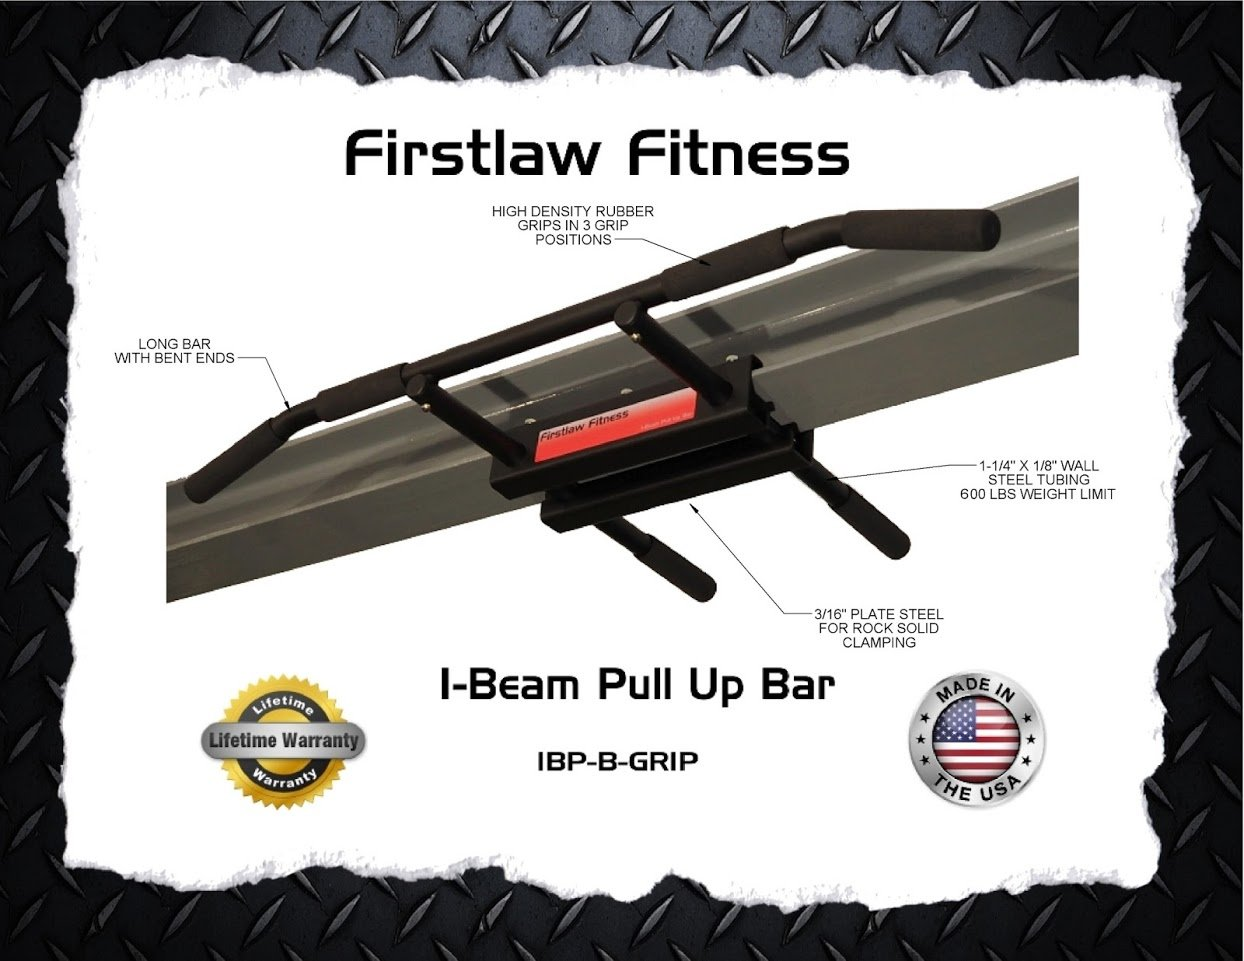 Firstlaw Fitness - 600 LBS Weight Limit - I-Beam Pull Up Bar - Long Bar with Bent Ends WITH Pull Up Assist - Durable Rubber Grips - Black Label - Made in the USA! by Firstlaw Fitness (Image #7)